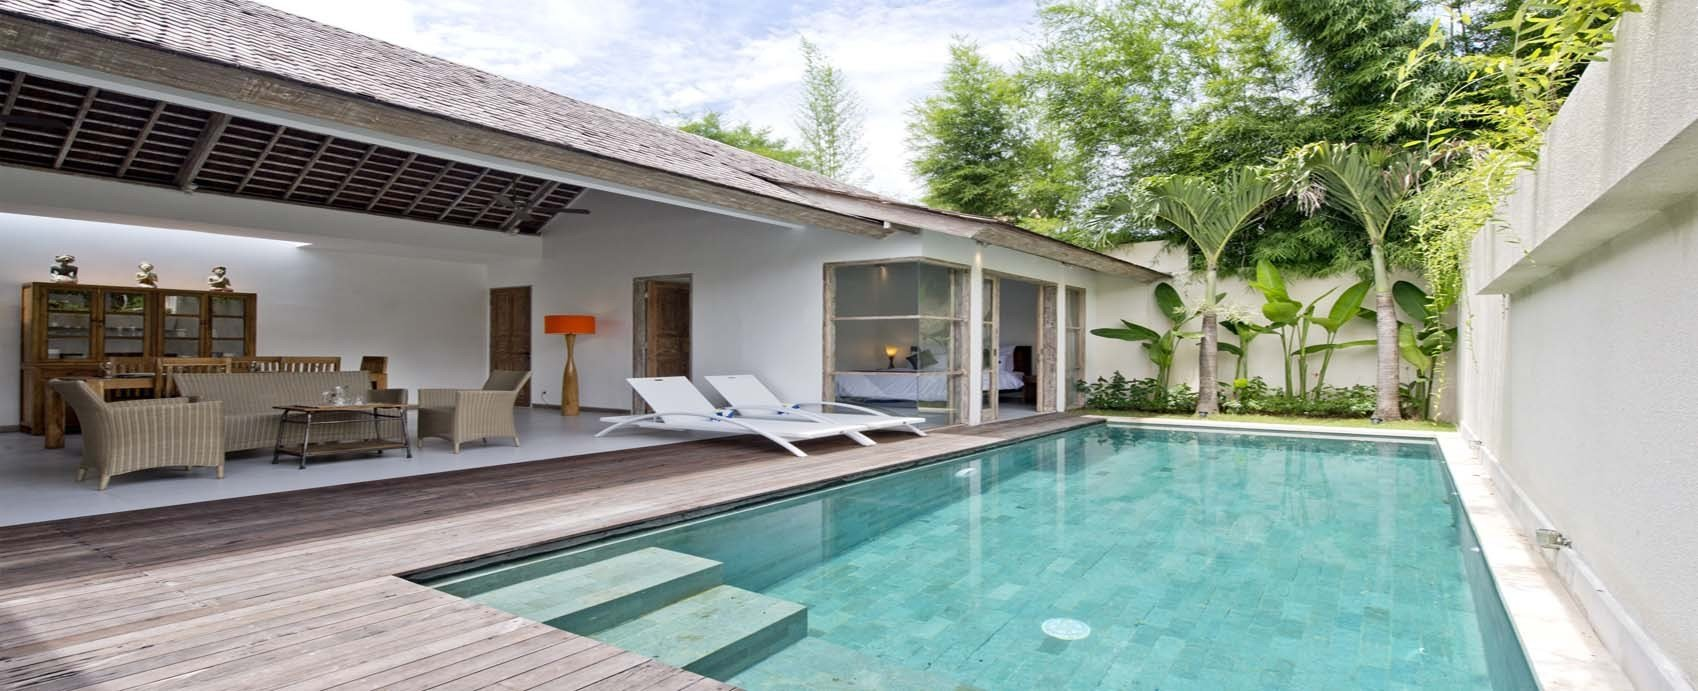 Best The Decks Bali Legian Indonesia Two Bedroom Villas For With Pictures